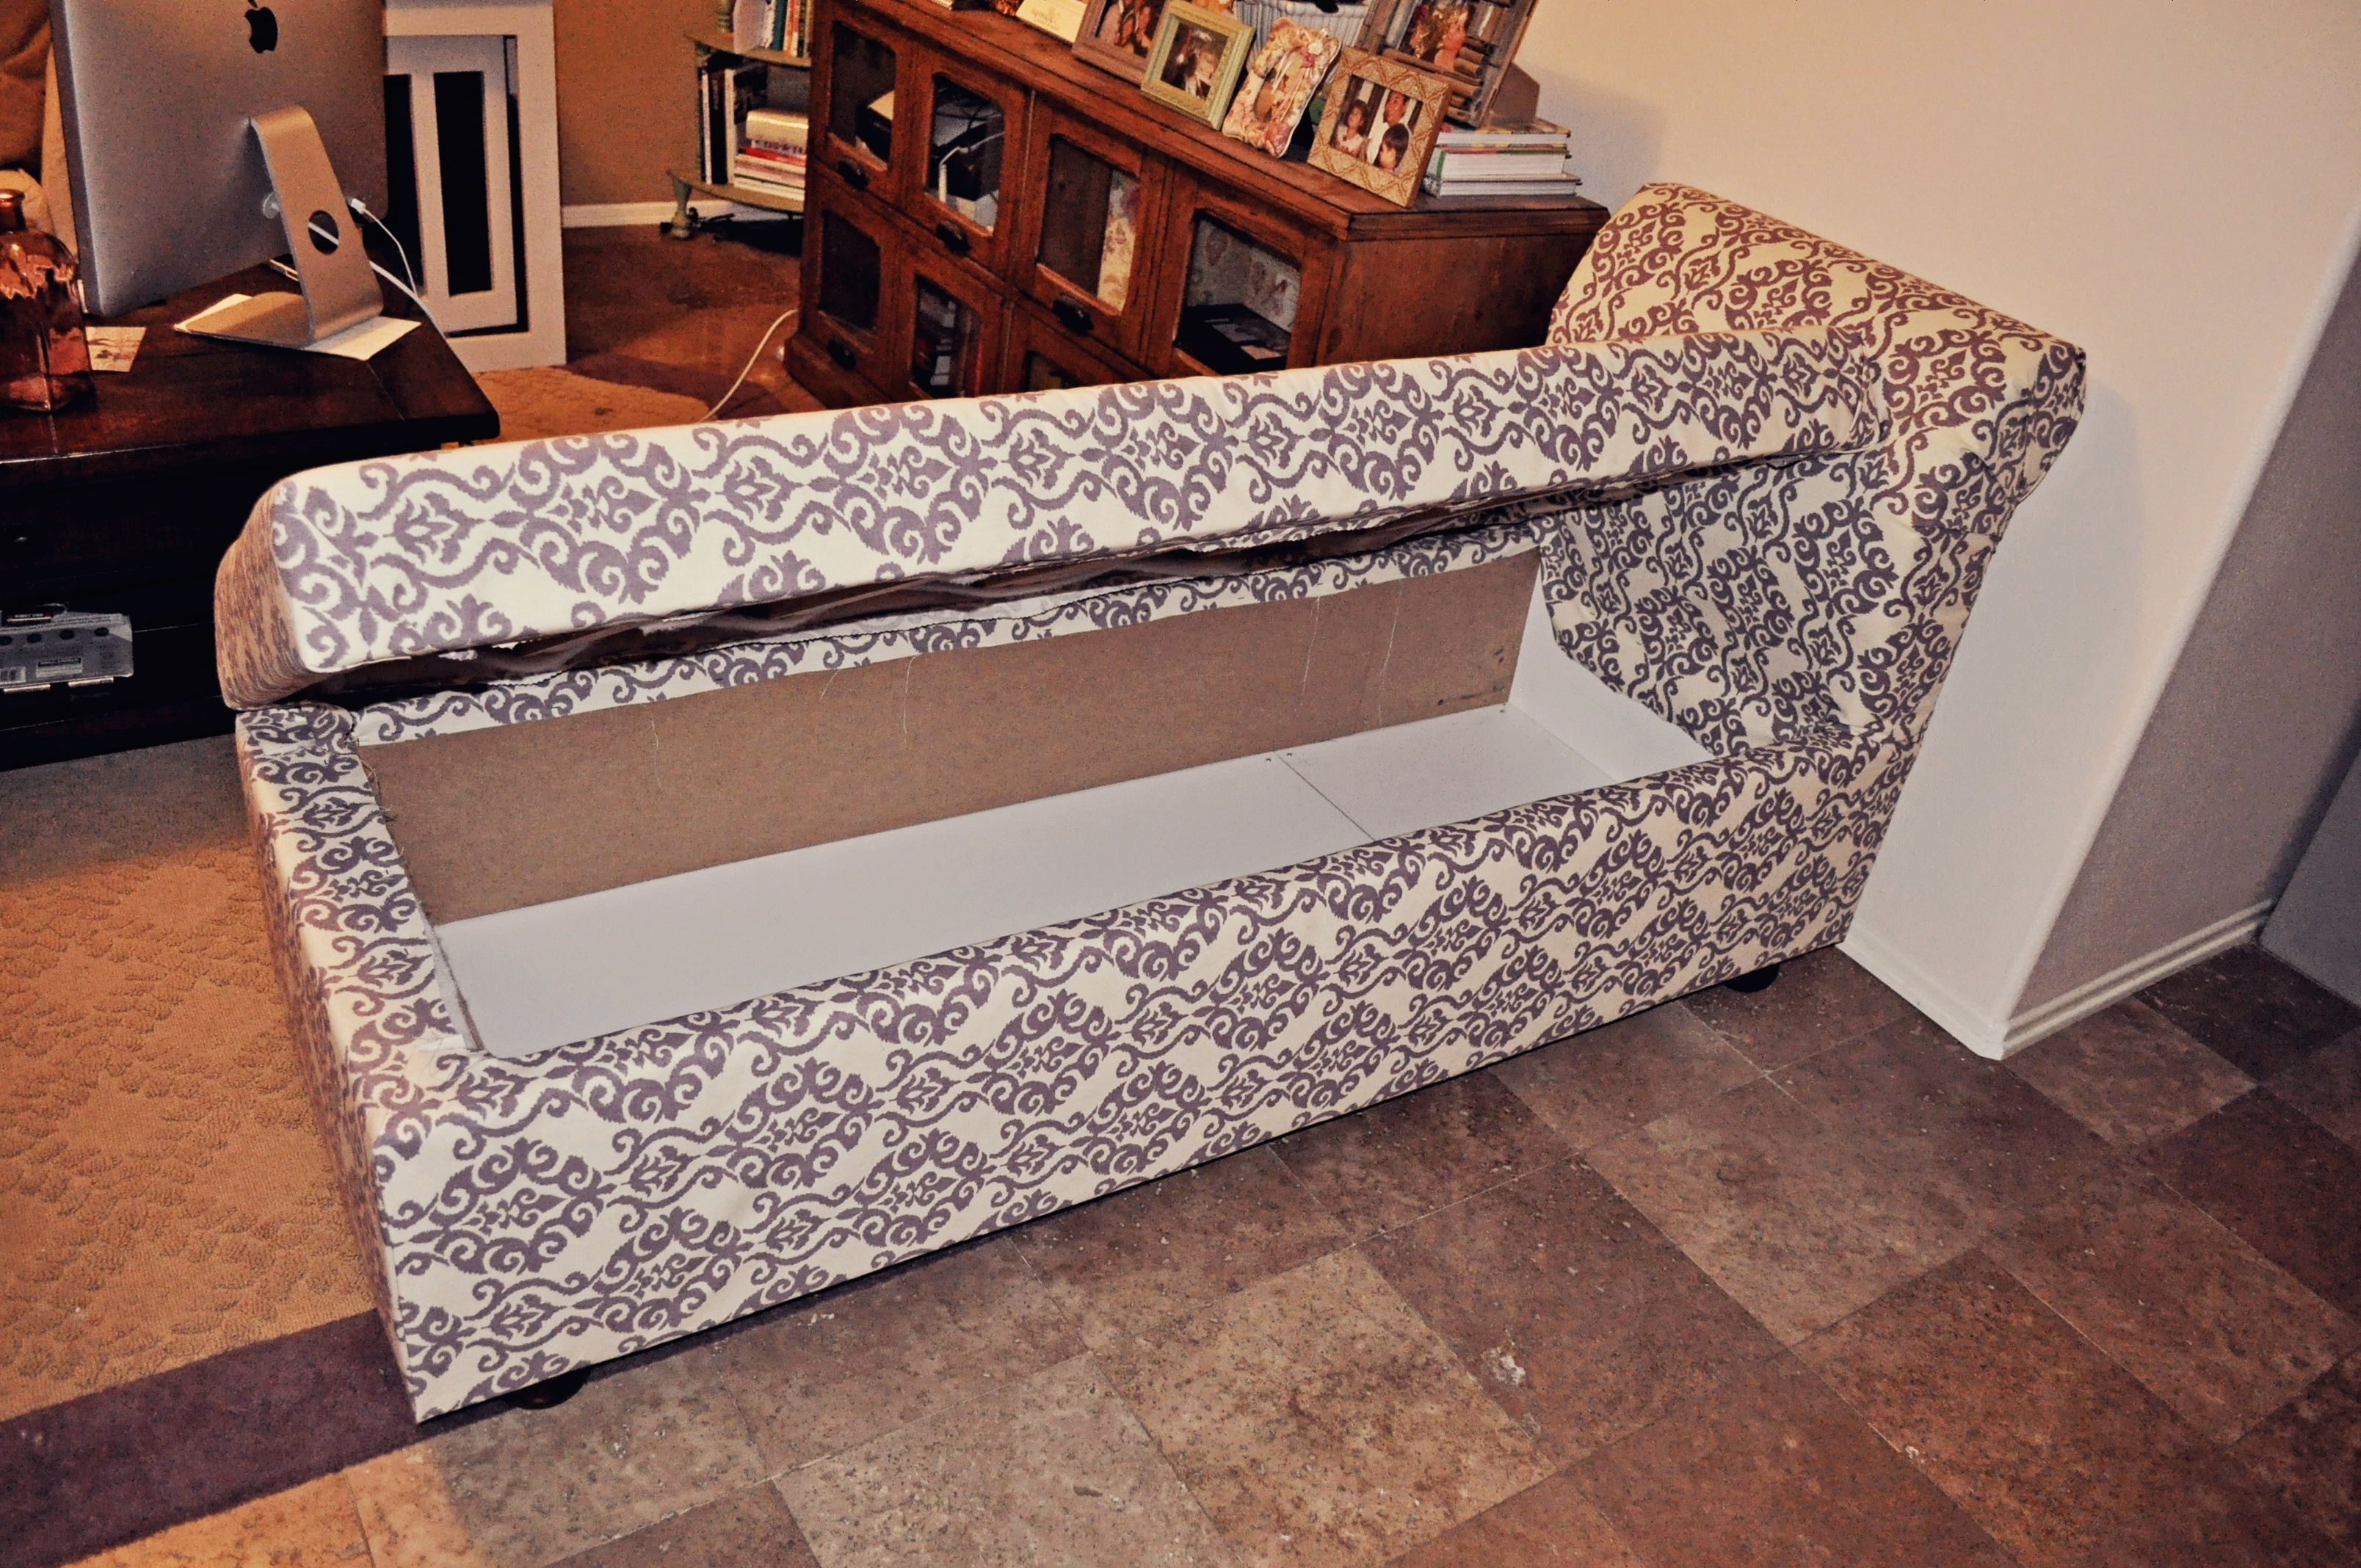 Storage Chaise Lounge – Diy Projects Inside Most Current Chaise Lounges With Storage (View 7 of 15)